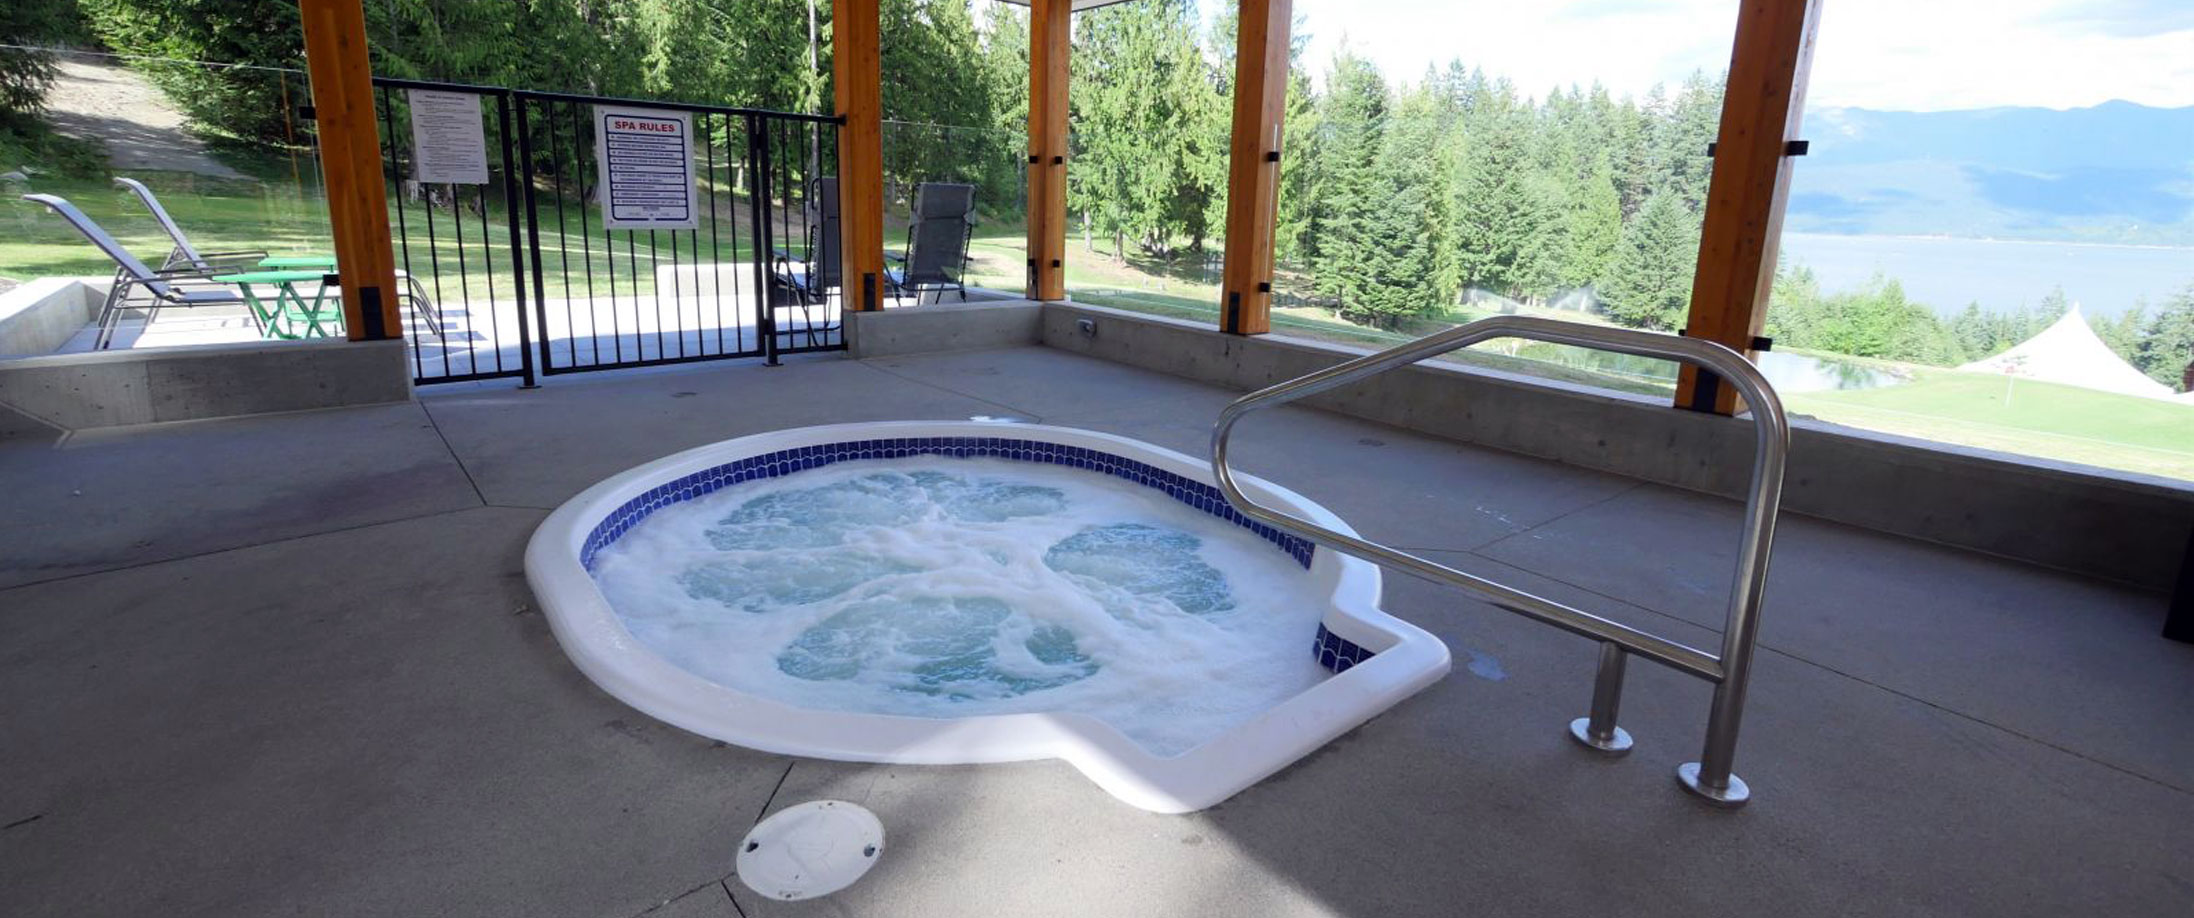 Paradise Pool and Spa Commercial Hot Tub at Kootenay Lakview Lodge